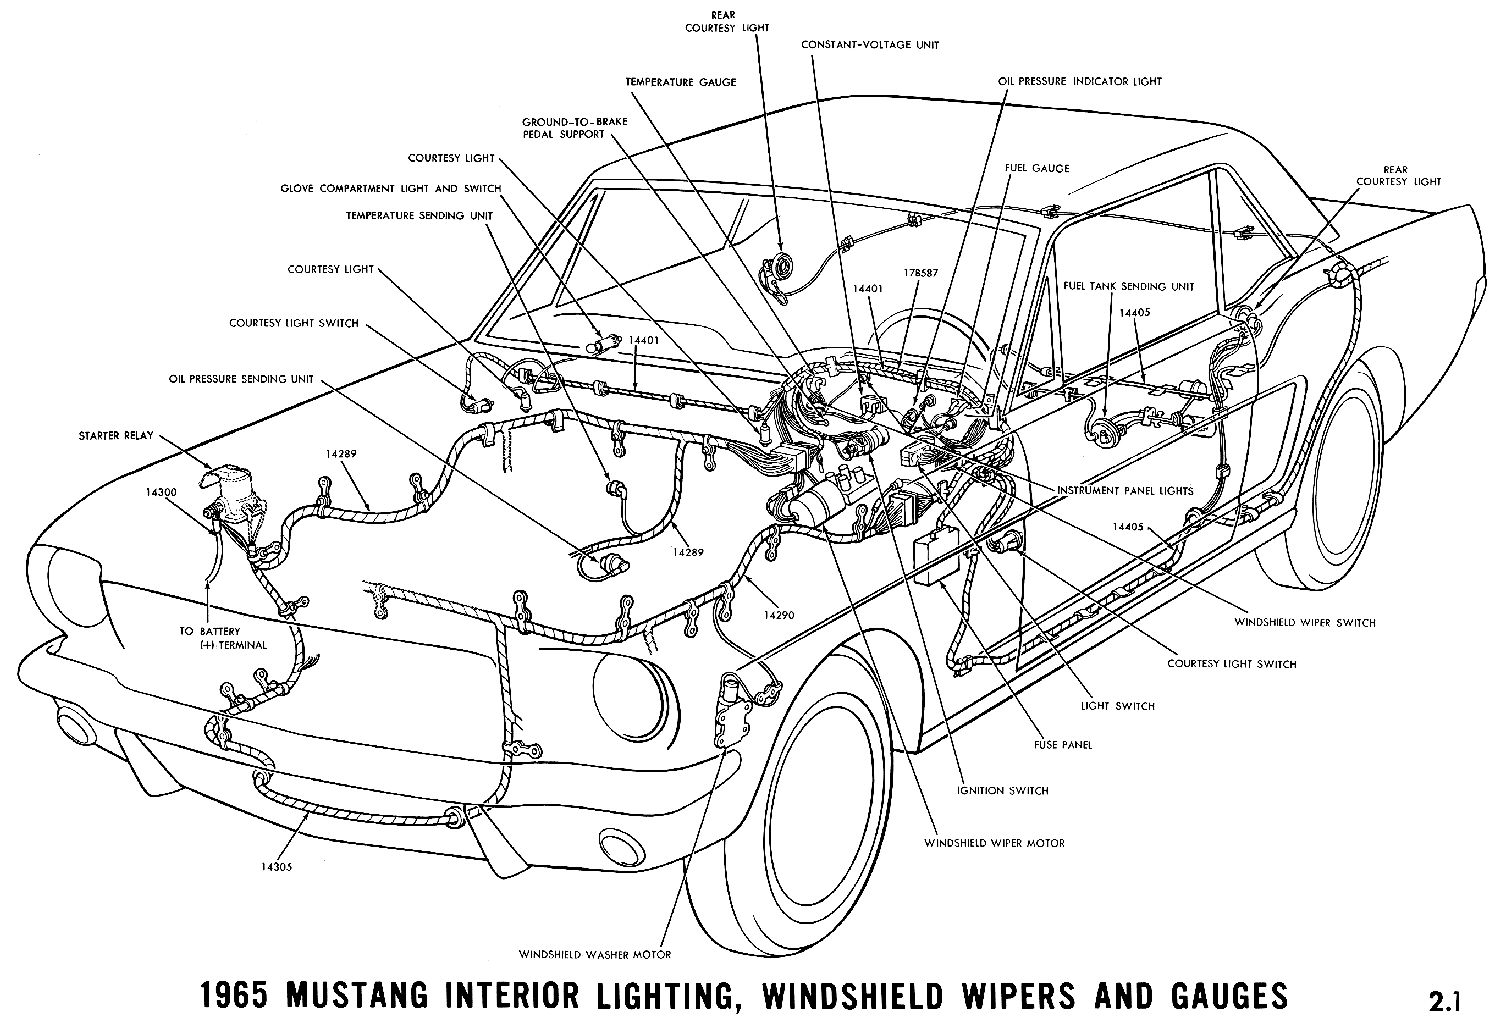 65 Mustang Column Wiring Diagram | Wiring Liry on 1973 nova steering column diagram, 1970 nova steering column diagram, 1963 nova steering column diagram, 1964 nova steering column diagram, ford power steering diagram, 1969 nova steering column diagram, 1965 nova steering column diagram, 1968 nova steering column diagram, 1966 nova wiring diagram, 1971 nova steering column diagram, 1974 nova steering column diagram,